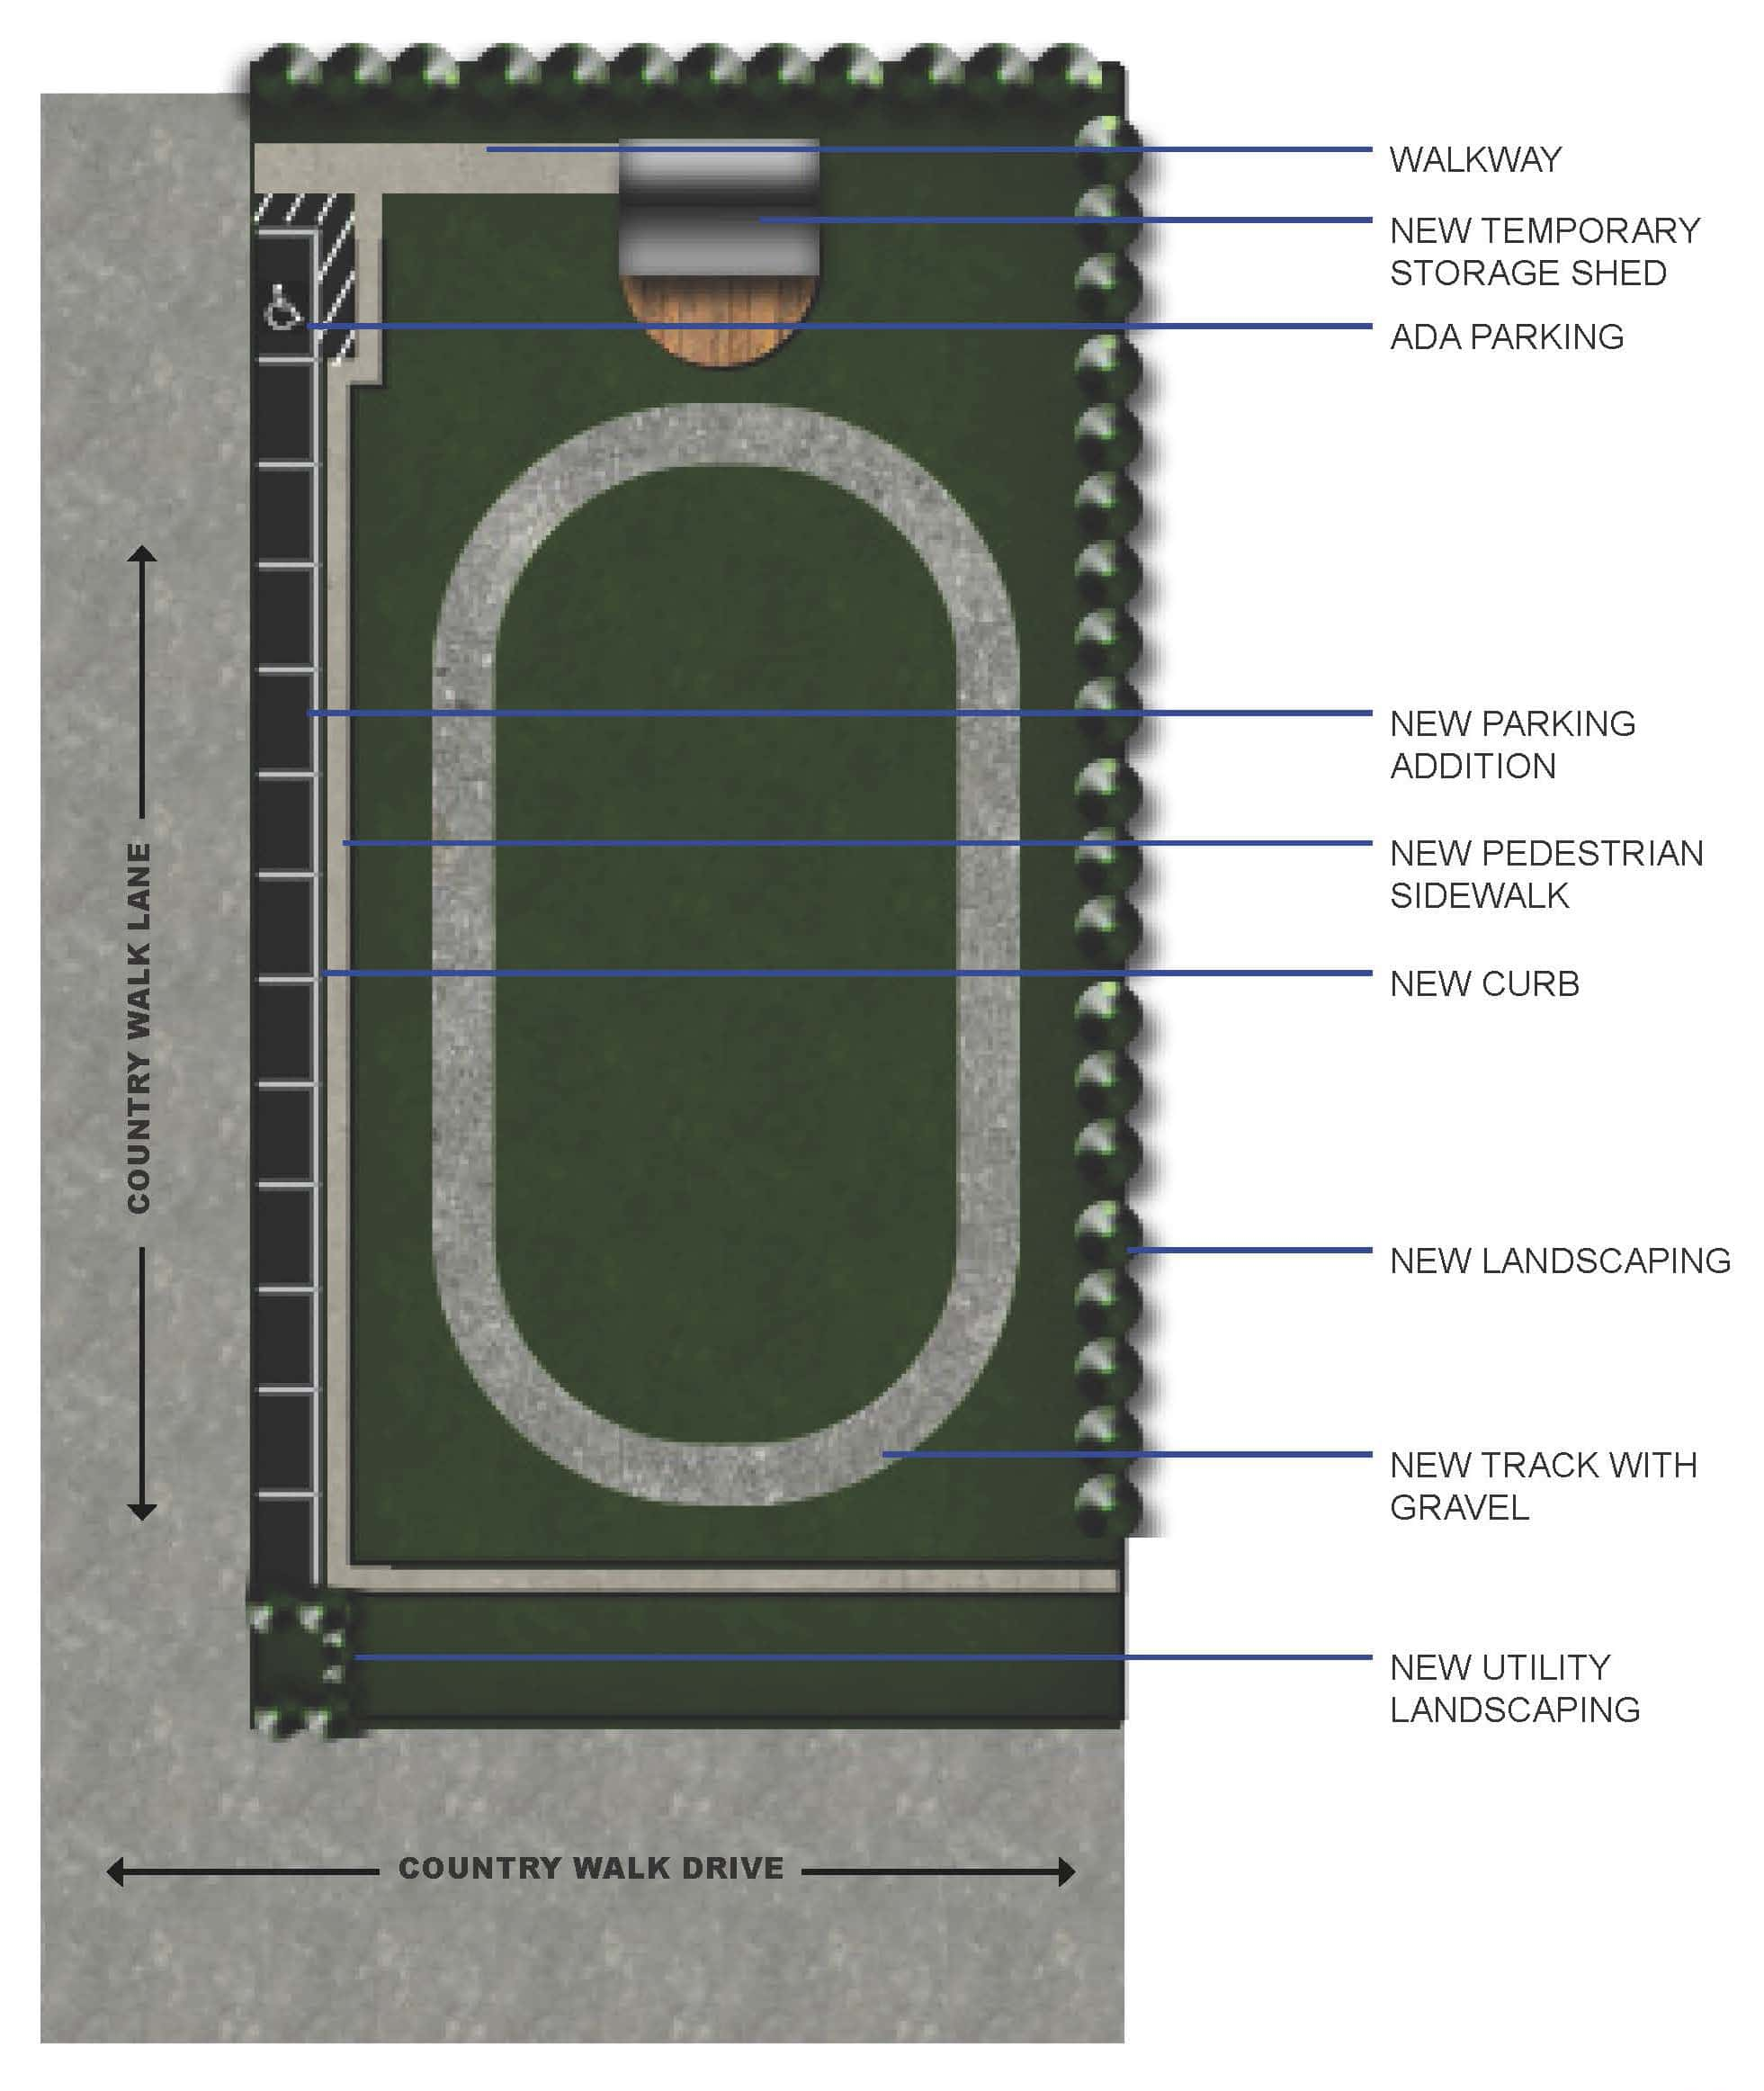 Sister Bay Athletic Club FieldHouse Plans